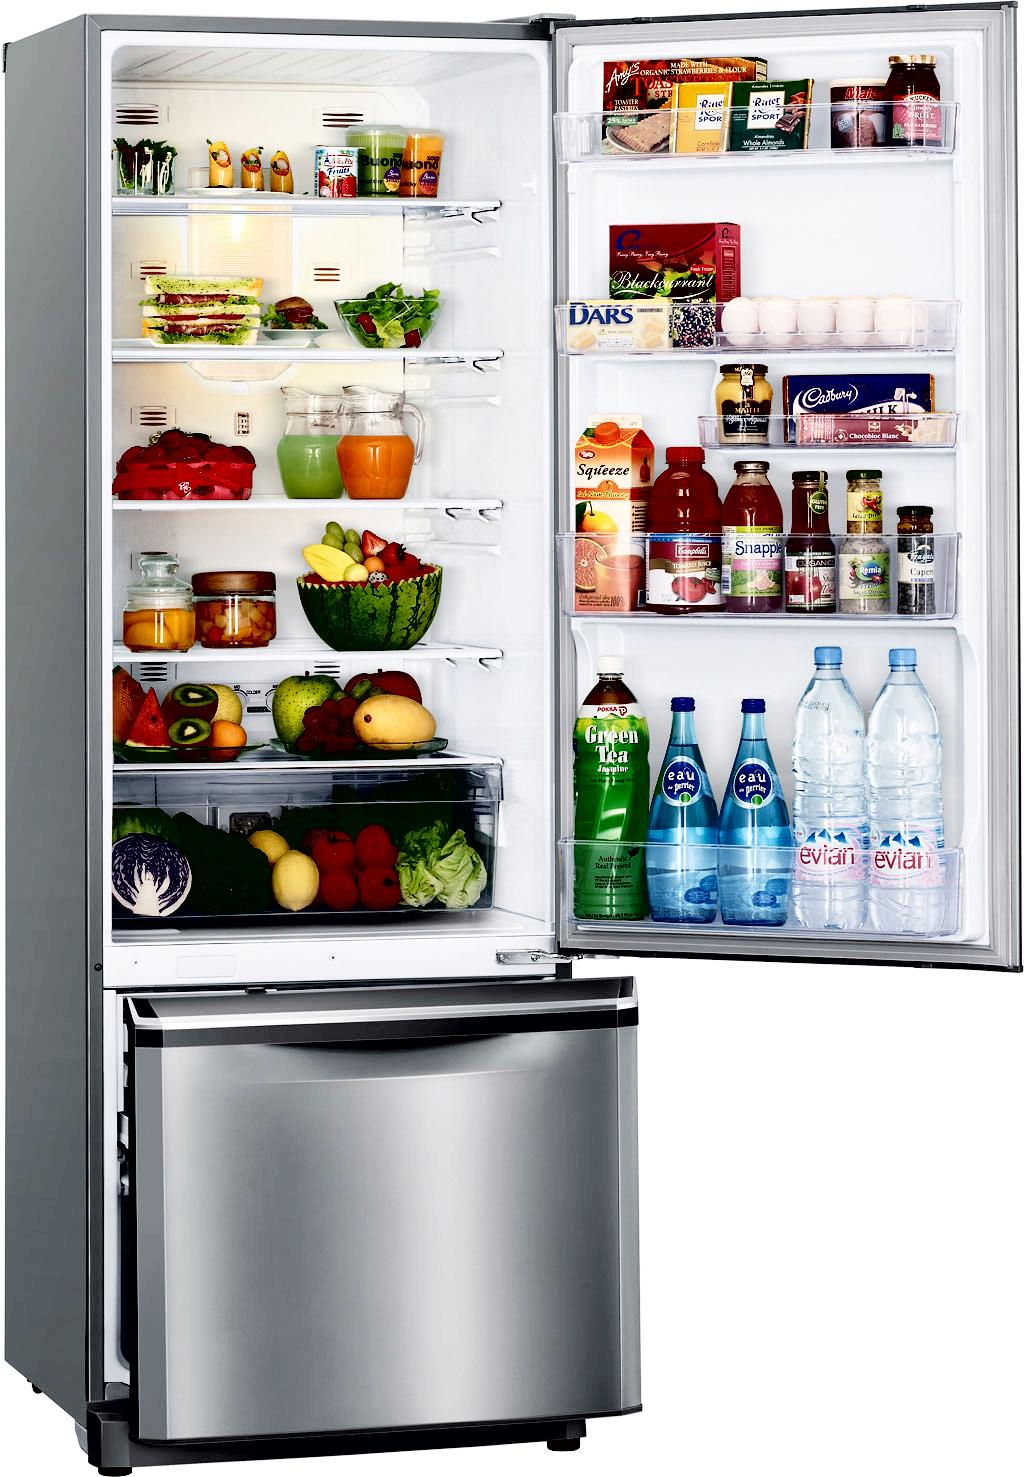 The Refrigerator Organizing And Cleaning Tips How To